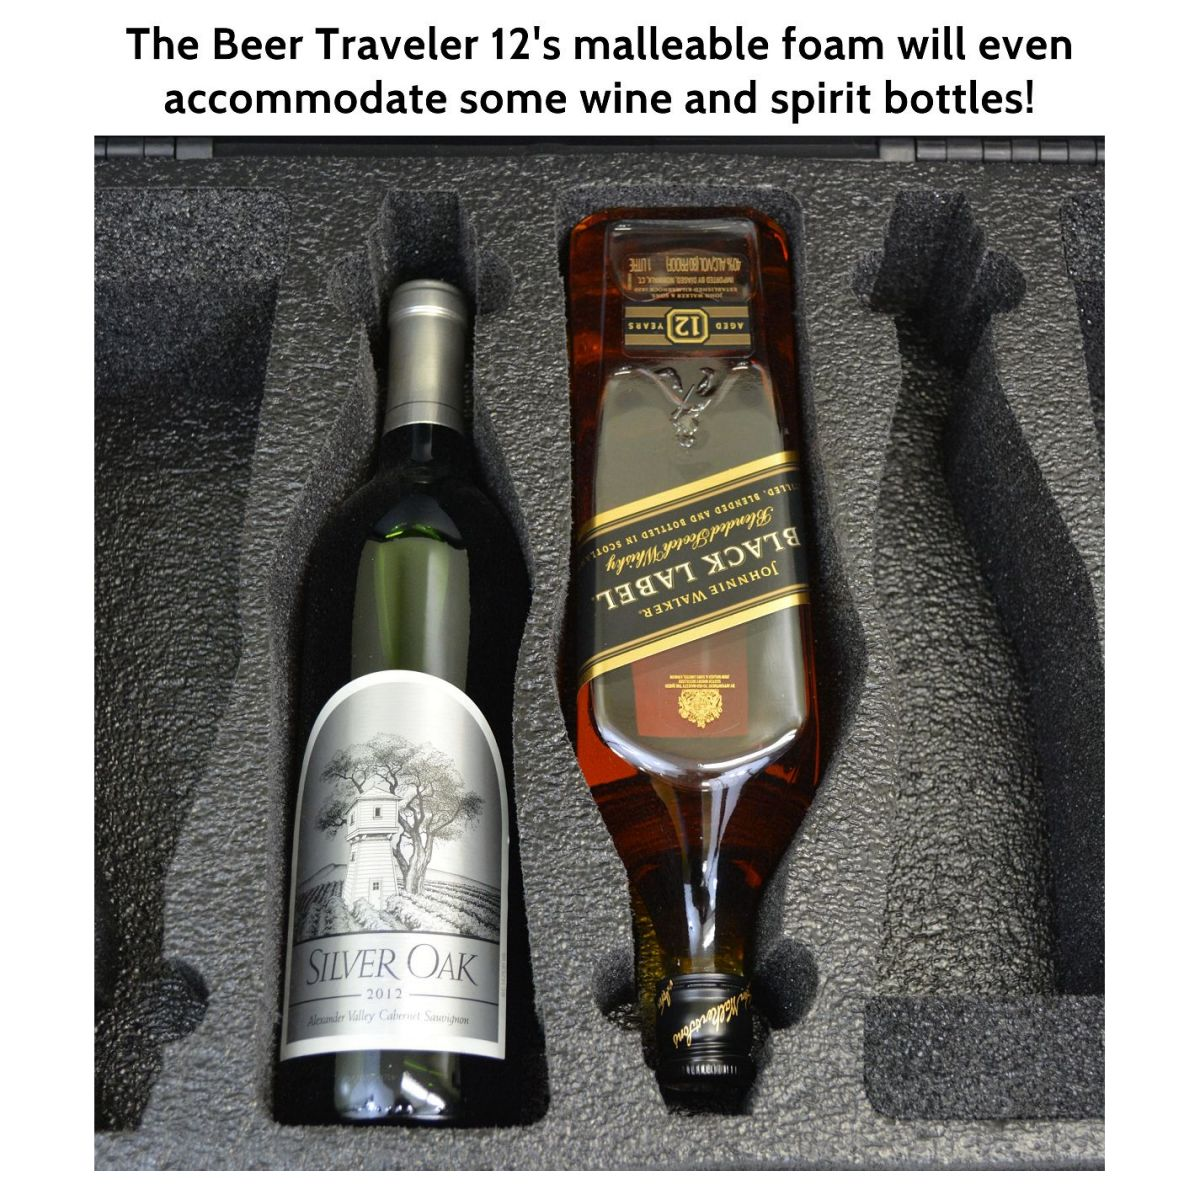 Seahorse SE-920 BC Beer Traveler 12 Custom Foam Case - Wine & Spirits, too!